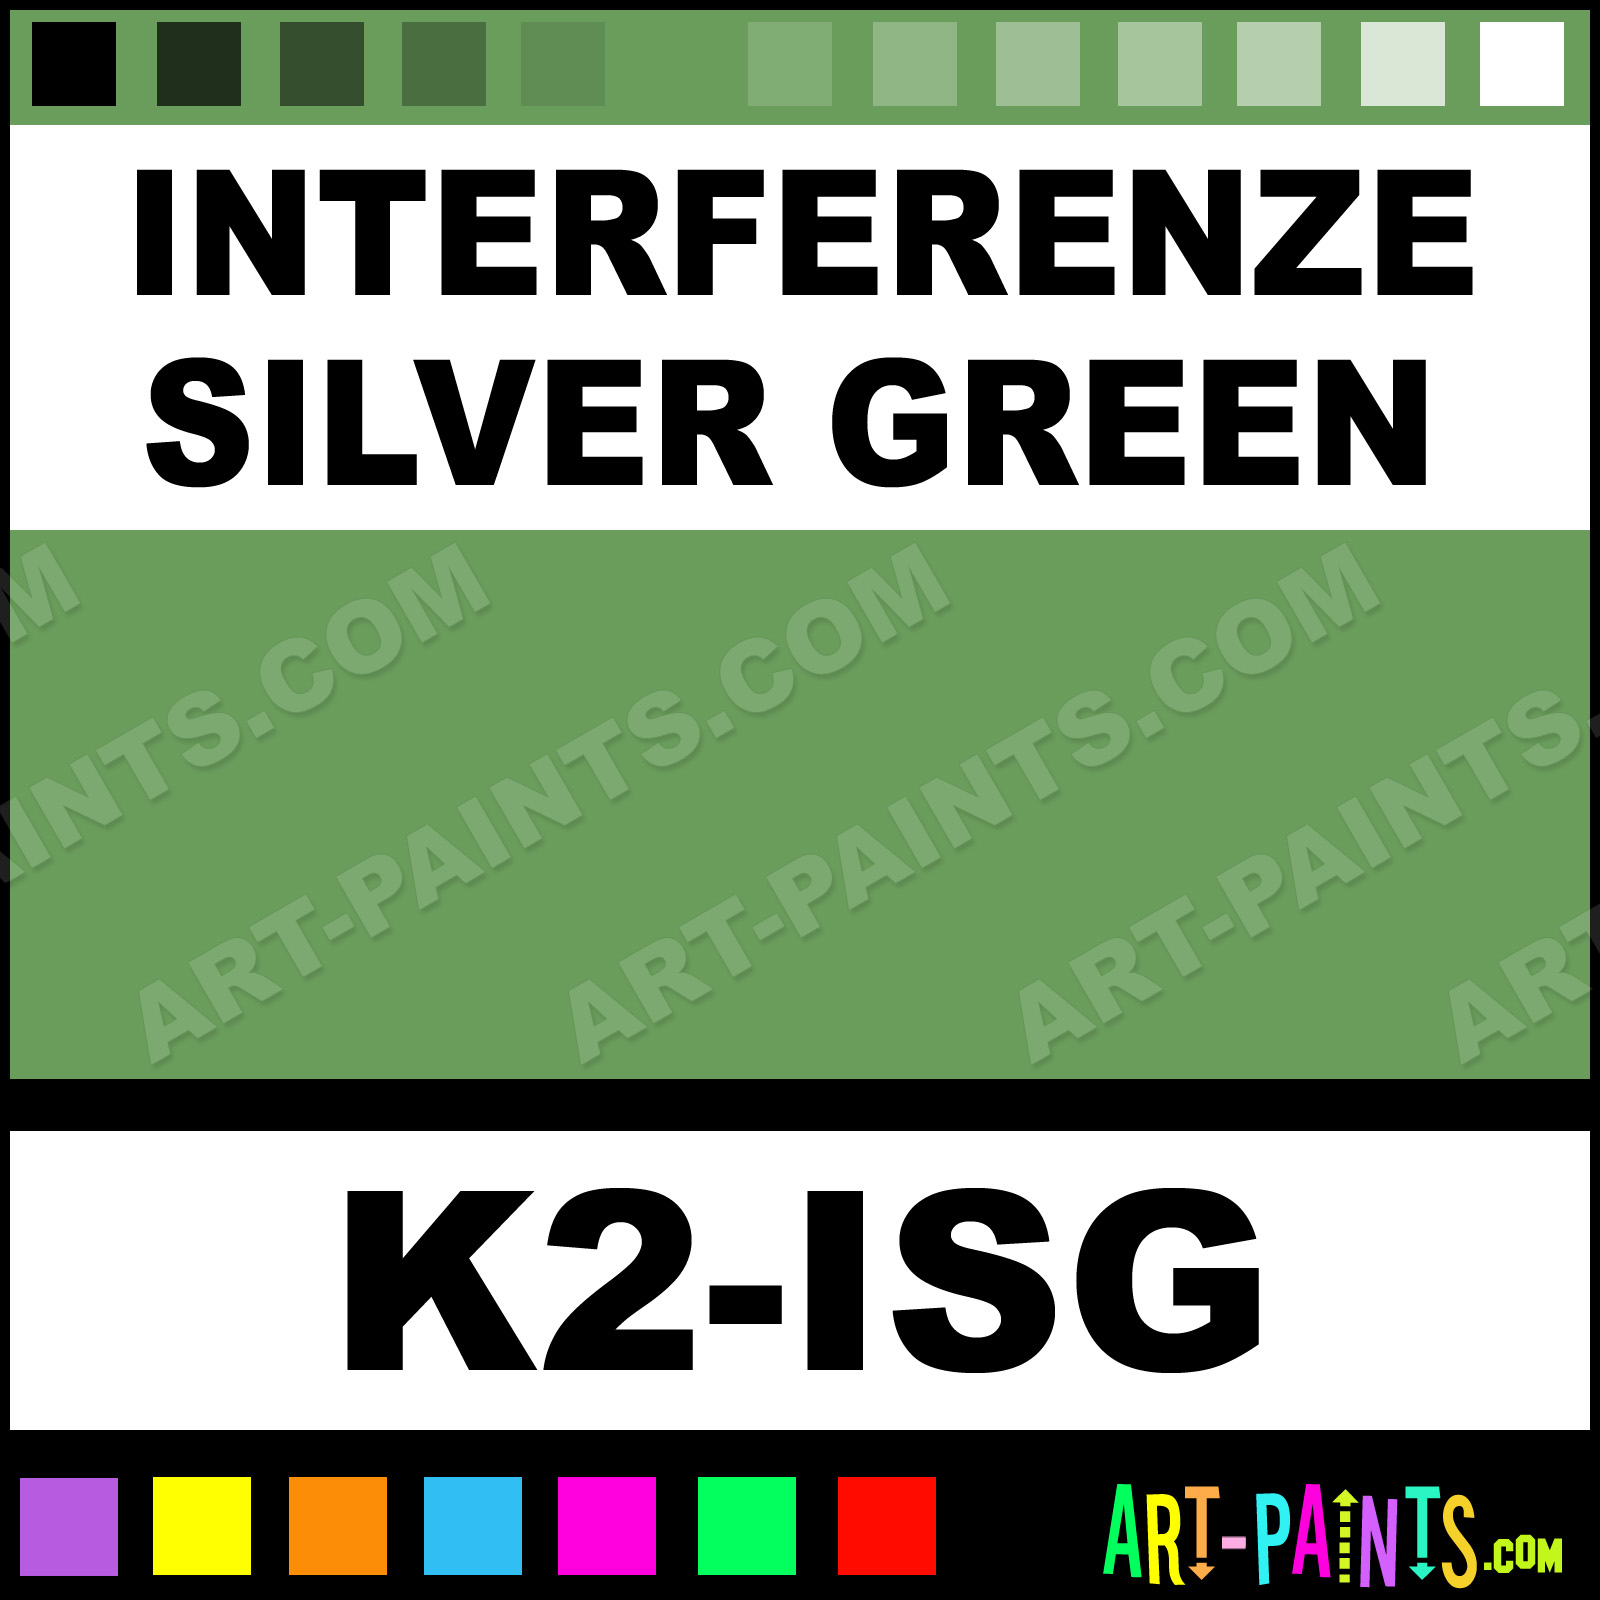 interferenze silver green paints body face paints k2 isg